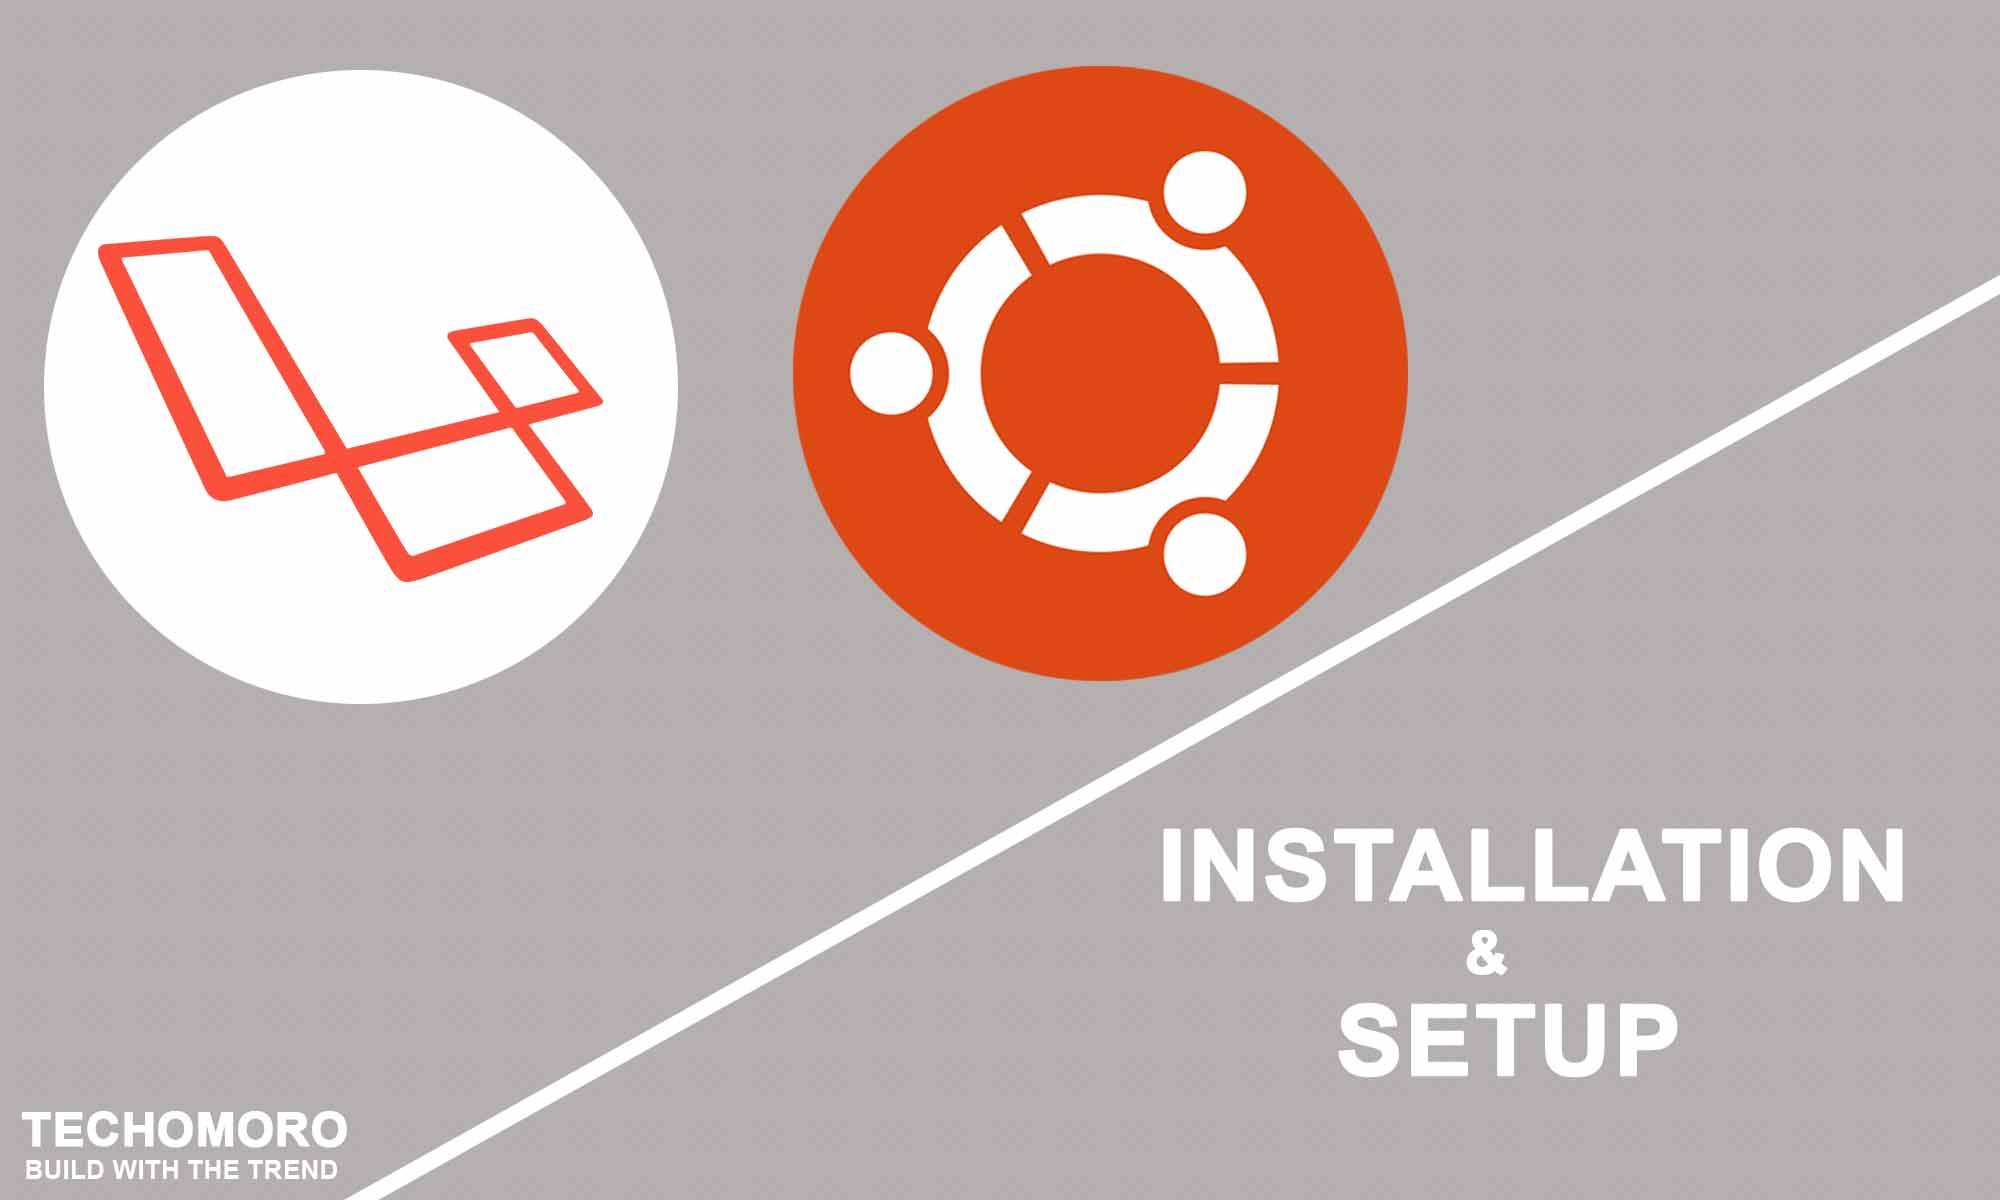 How to Install and Setup Laravel 5.6 on Ubuntu 17.10